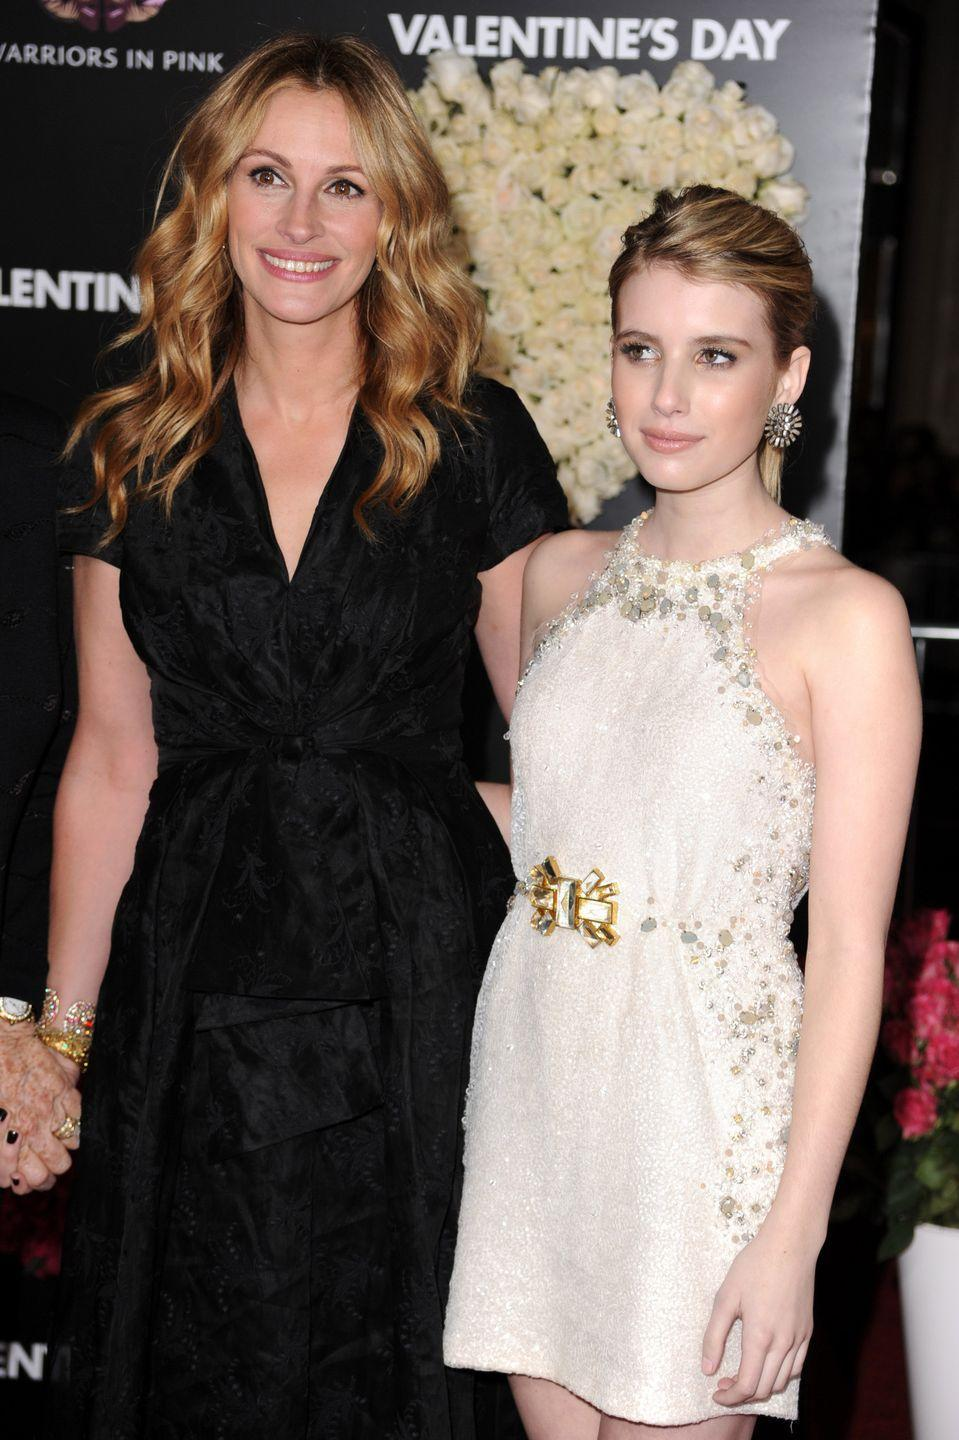 """<p>During her childhood, Emma Roberts spent time on the set of her Aunt's films, which inspired her to start acting herself.</p><p>The pair are very close and regularly feature on each other's Instagram accounts.</p><p><strong>Cosmopolitan UK's June issue is on sale now - </strong><a href=""""https://slack-redir.net/link?url=https%3A%2F%2Fmagsdirect.co.uk%2F%3Fs%3Dcosmopolitan%26post_type%3Dproduct"""" rel=""""nofollow noopener"""" target=""""_blank"""" data-ylk=""""slk:buy it online"""" class=""""link rapid-noclick-resp""""><strong>buy it online</strong></a><strong> with FREE next day delivery or </strong><a href=""""https://slack-redir.net/link?url=https%3A%2F%2Fwww.hearstmagazines.co.uk%2Fco%2Fcosmopolitan-magazine-subscription-website"""" rel=""""nofollow noopener"""" target=""""_blank"""" data-ylk=""""slk:subscribe here"""" class=""""link rapid-noclick-resp""""><strong>subscribe here</strong></a><strong> to get 6 issues for just £6!</strong><strong>Like this article?</strong></p><p><strong> <a href=""""https://hearst.emsecure.net/optiext/optiextension.dll?ID=nPTl681bgeiKhoMTpW31pzPluR1KbK8iYdv56%2BzY5rdcCoNqPYqUsTx_%2BXEjZKPdzGeMe03lZk%2B1nA"""" rel=""""nofollow noopener"""" target=""""_blank"""" data-ylk=""""slk:Sign up to our newsletter"""" class=""""link rapid-noclick-resp"""">Sign up to our newsletter</a> to get more articles like this delivered straight to your inbox.</strong></p>"""